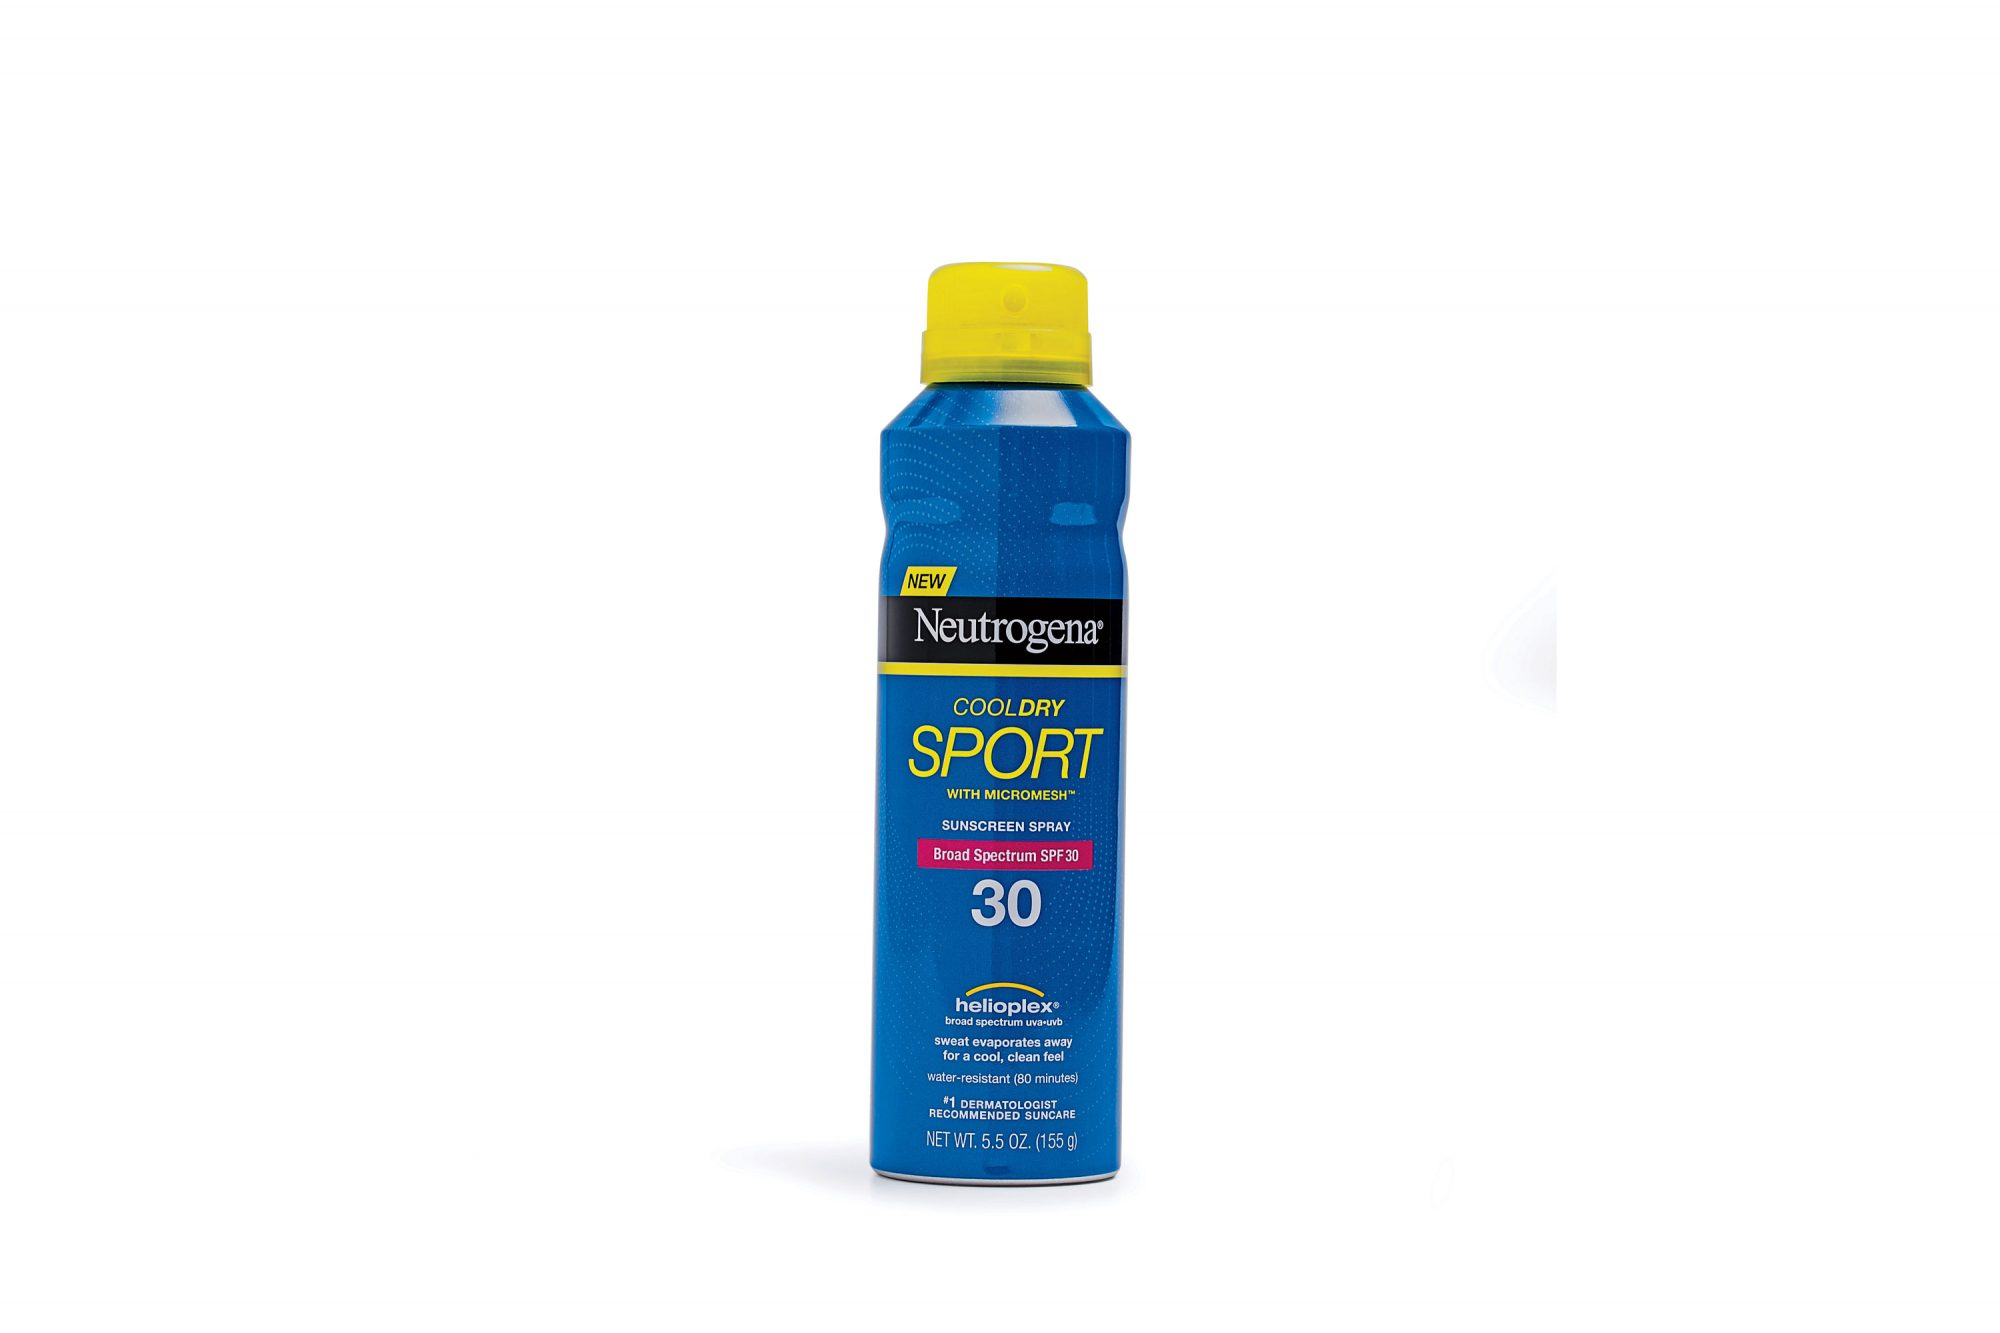 CoolDry Sport Sunscreen Spray SPF 30